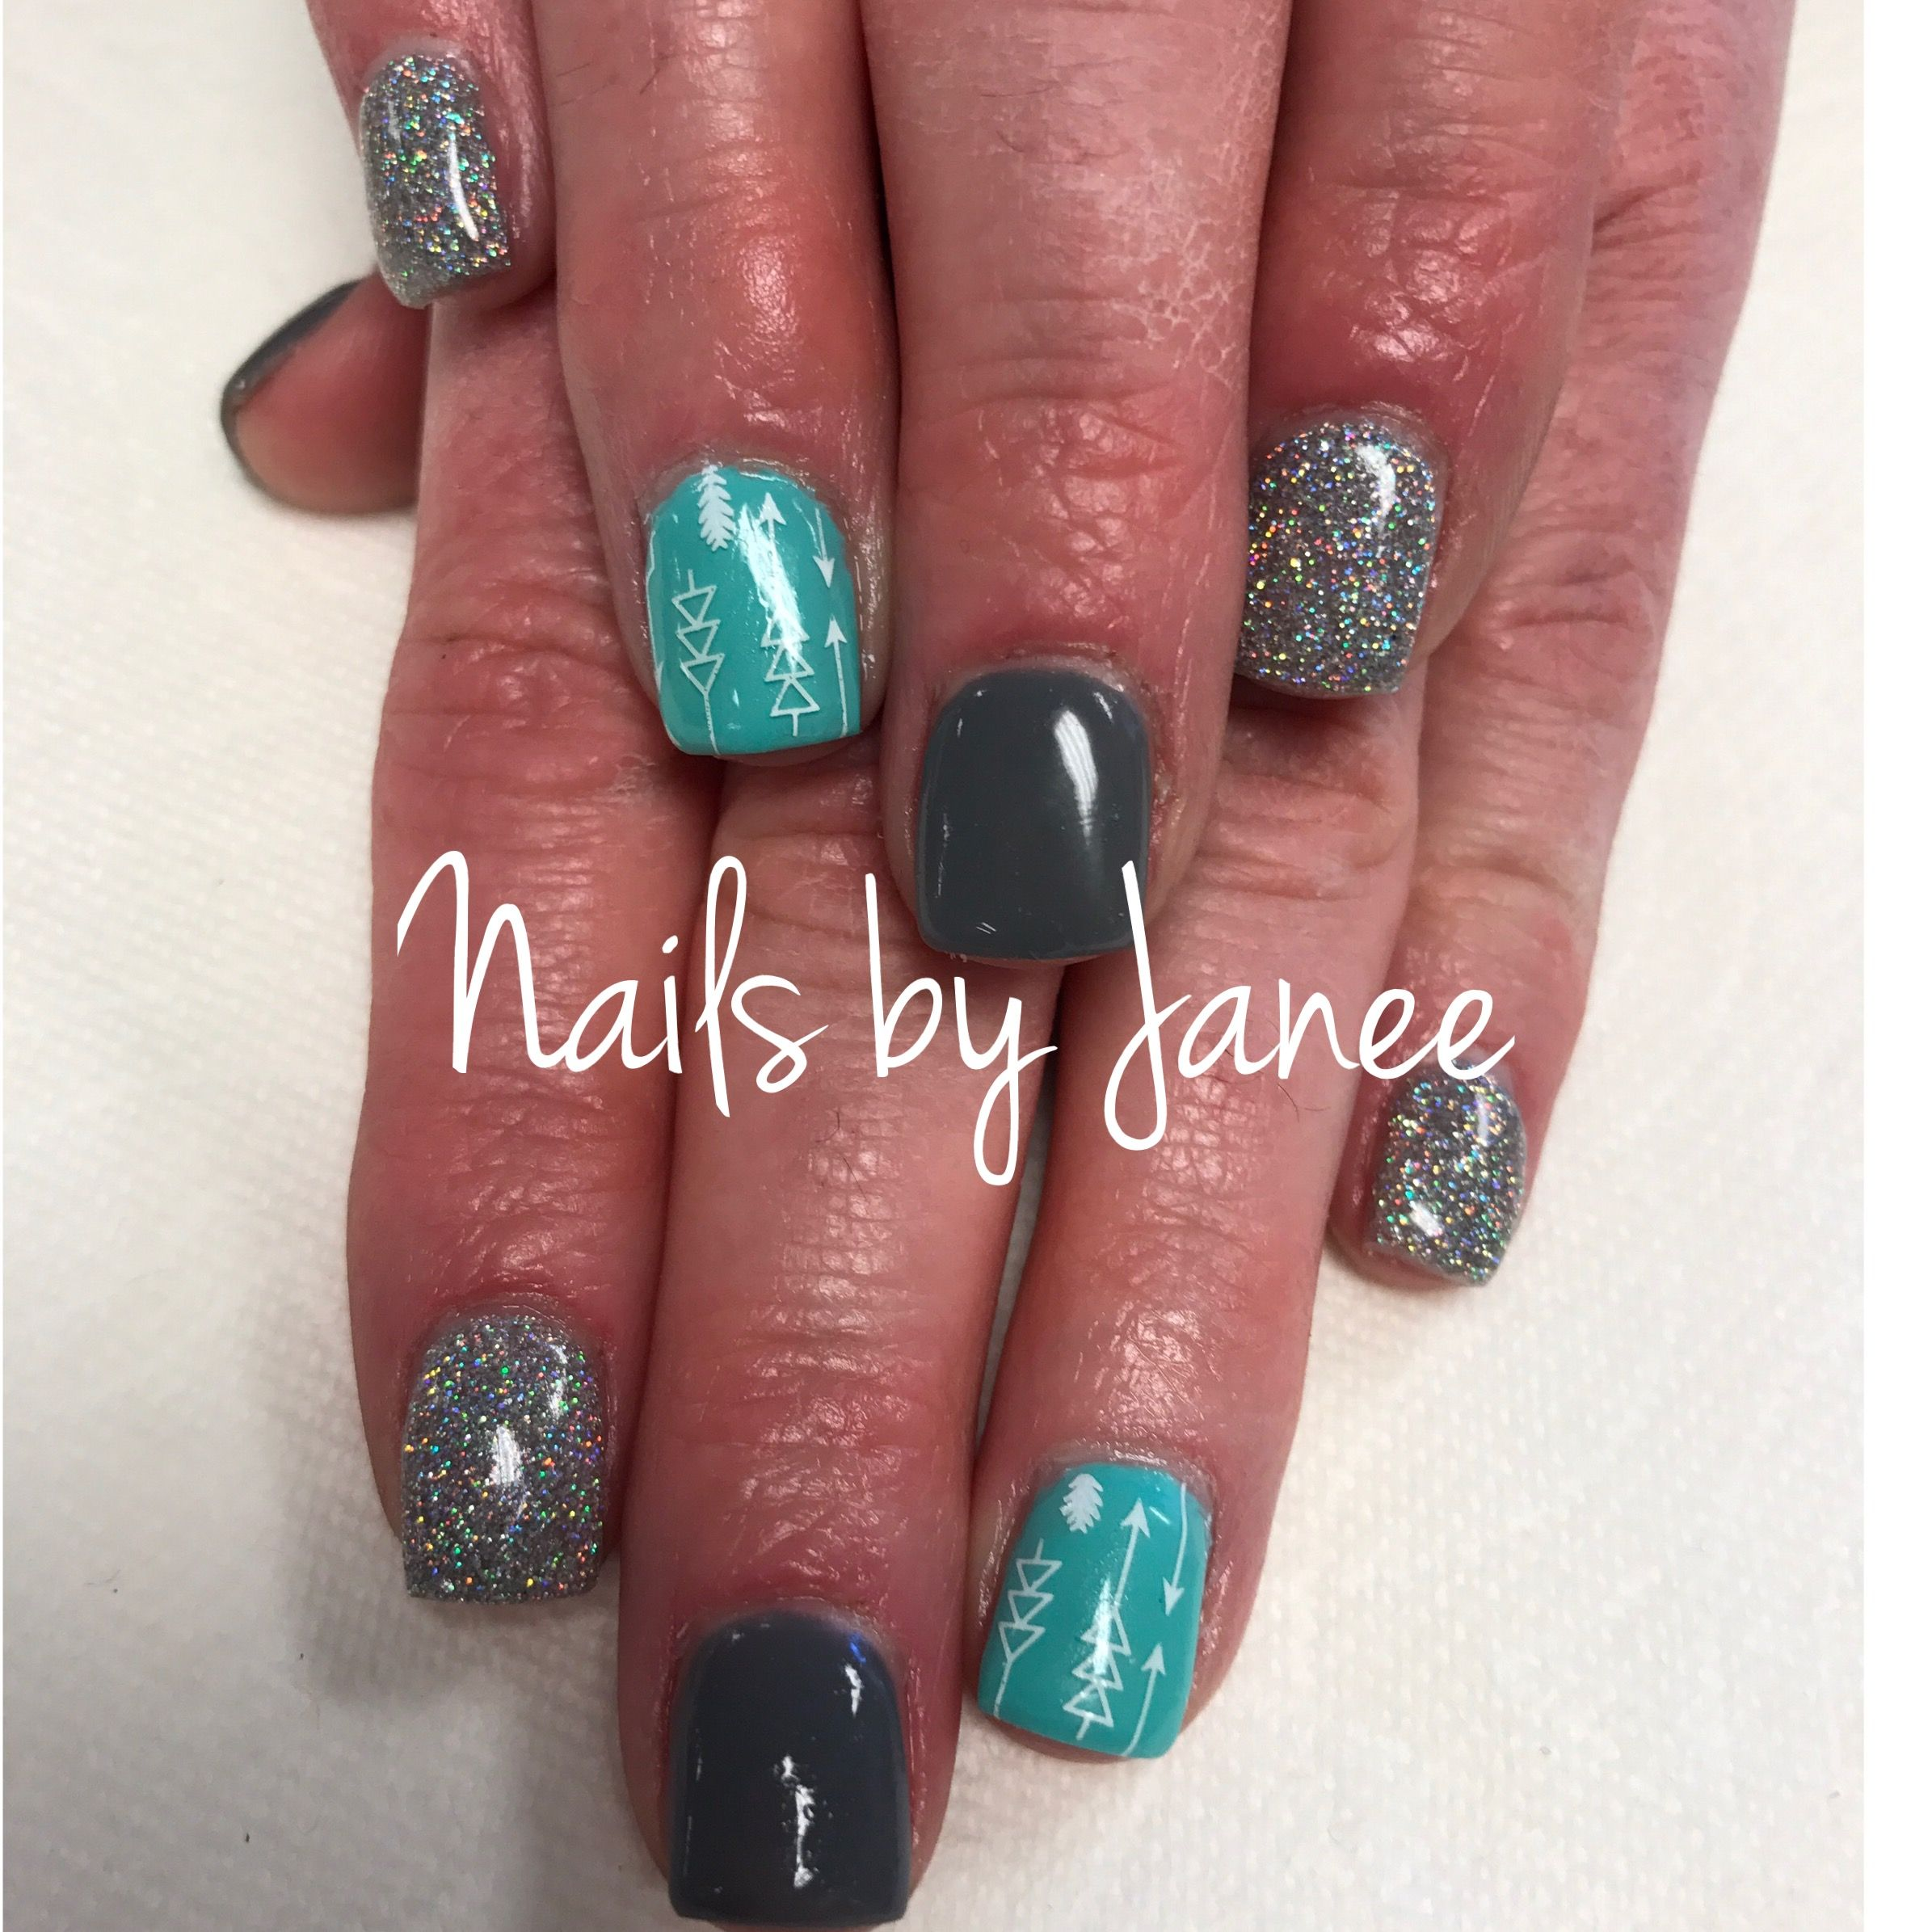 Nails by Janee | Nails by Janee at A Wild Hair Salon Reno, NV ...